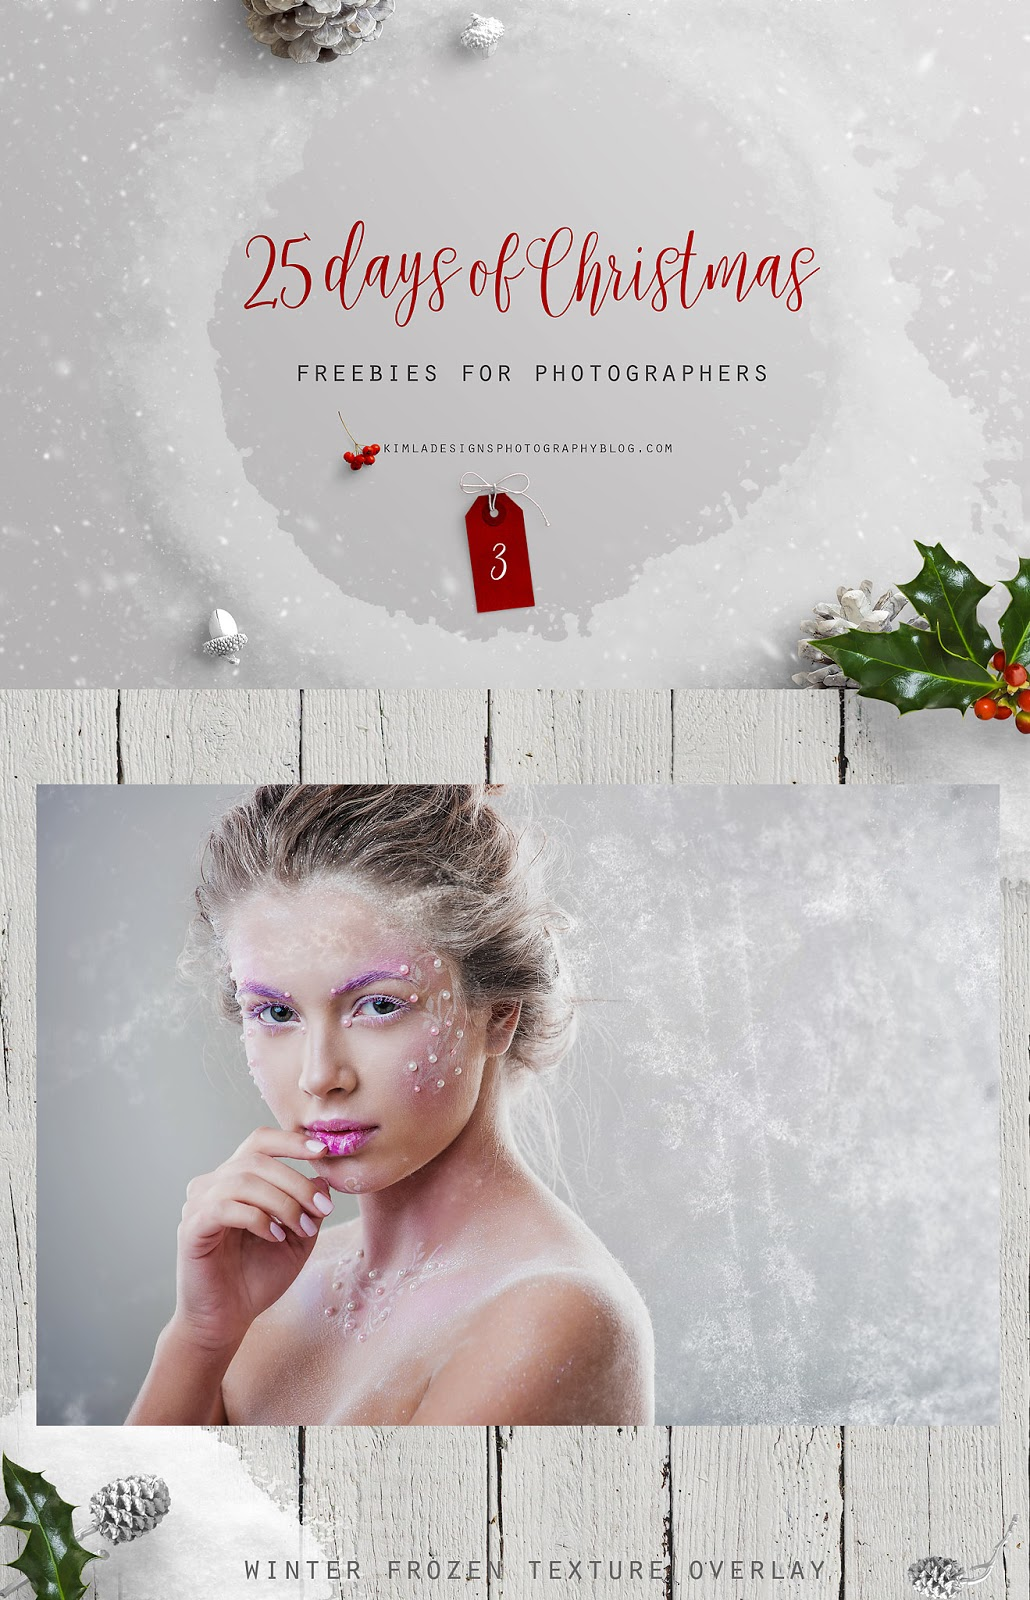 Day 3 of 25 days of Christmas Freebies for Photographers